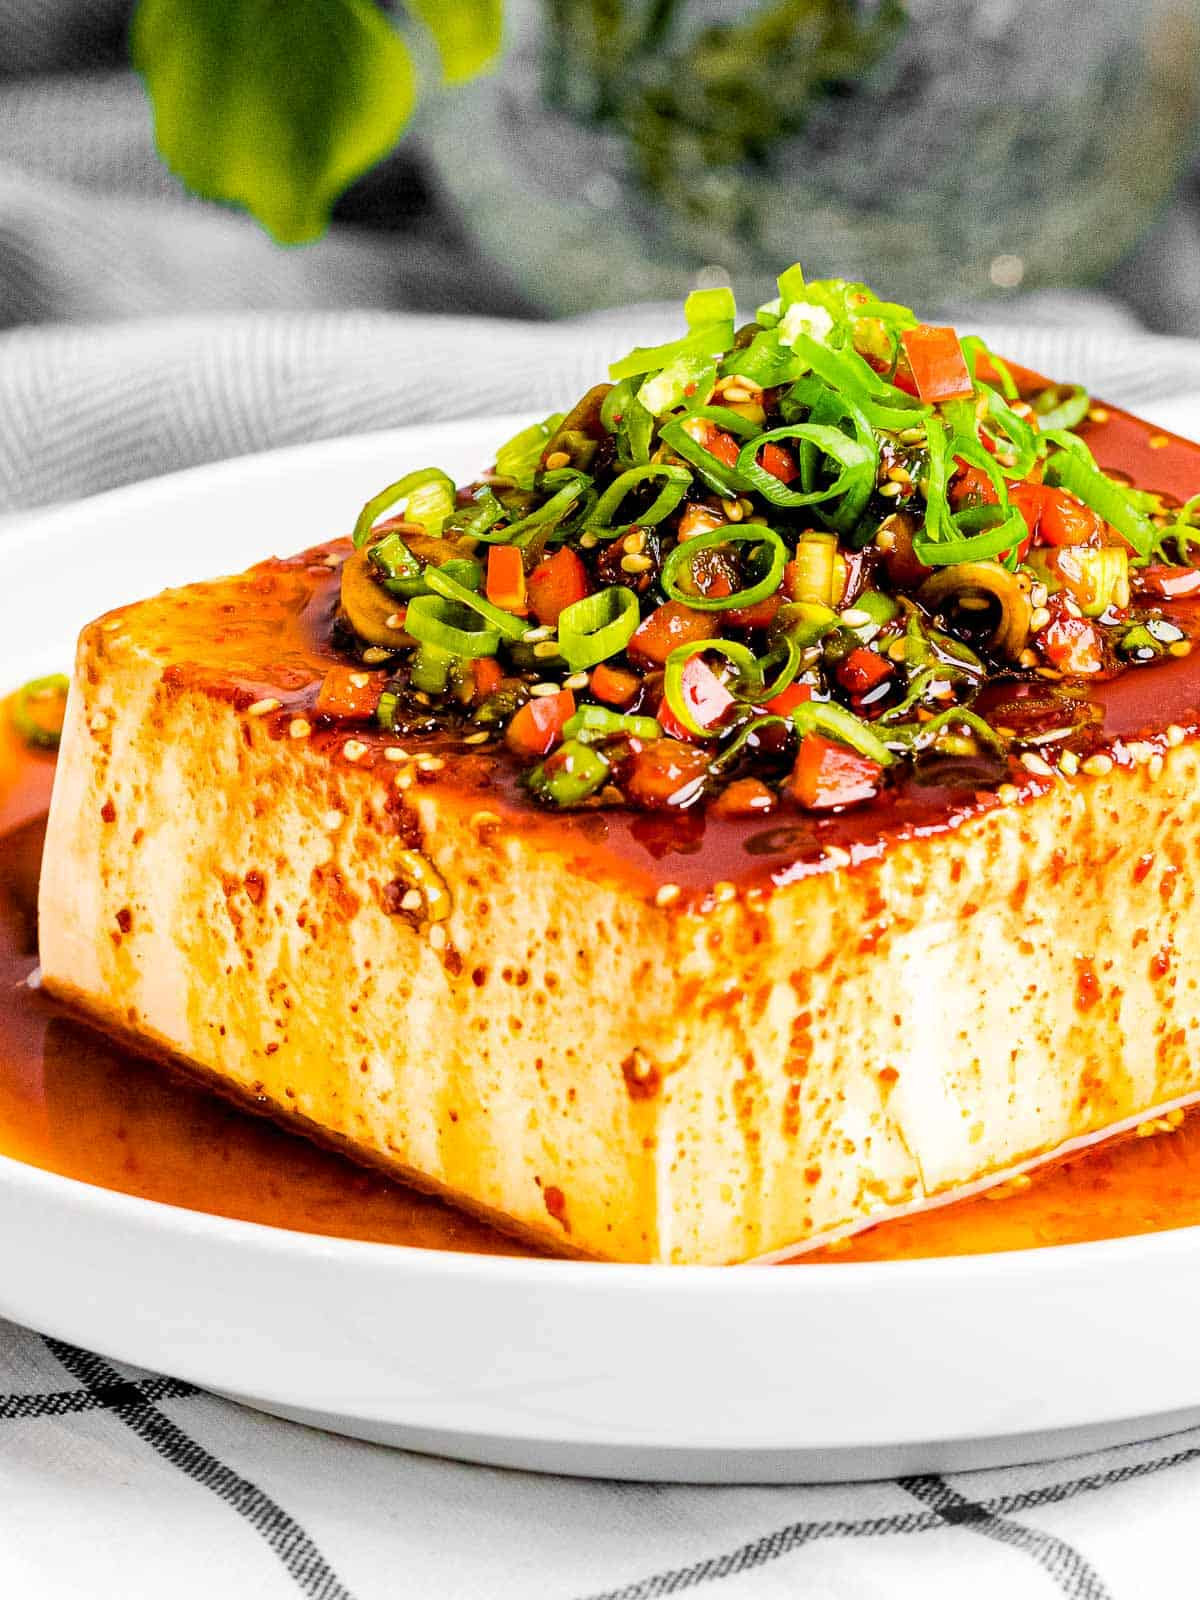 Silken tofu with Korean soy sauce made of green onions, peppers, sesame oil, and red pepper flakes in a white bowl.